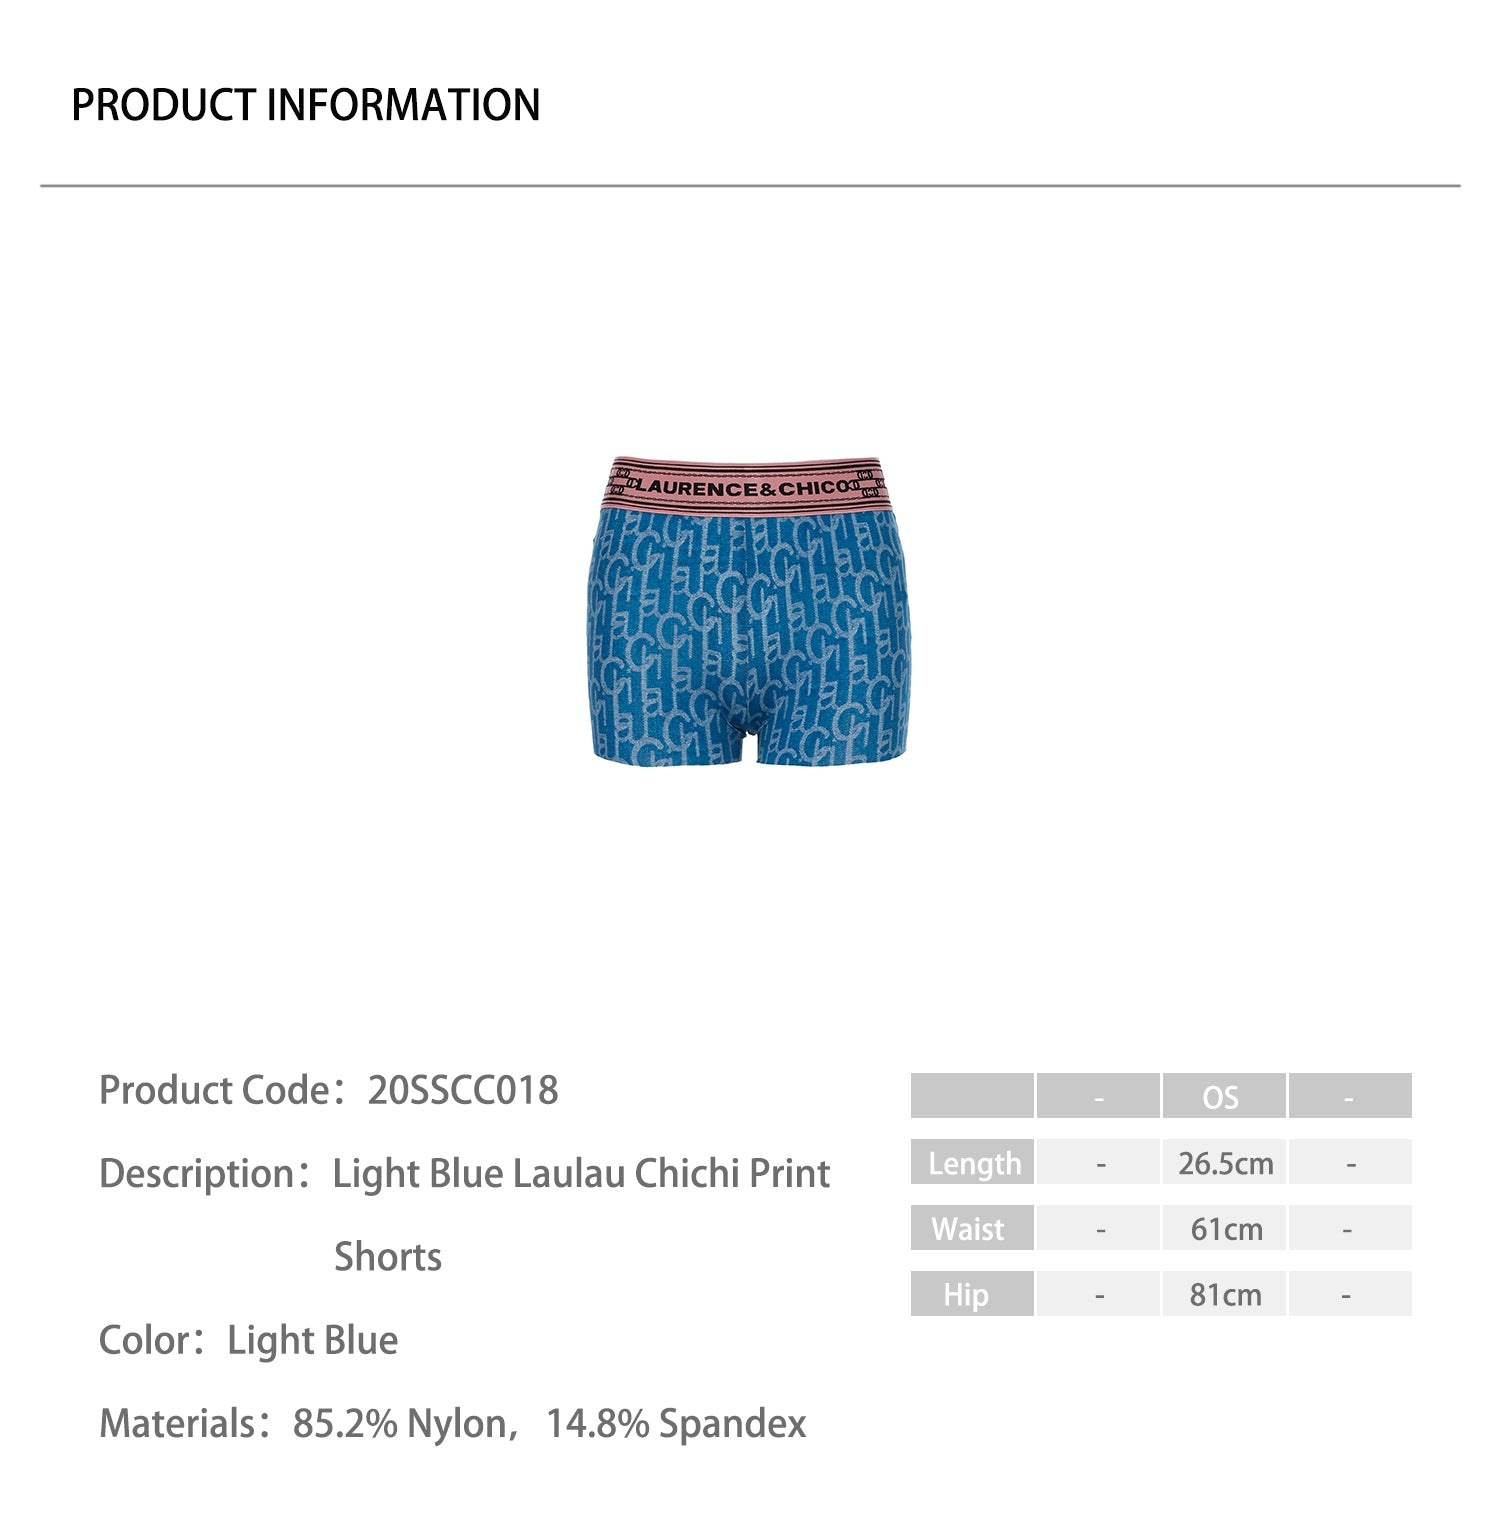 Light Blue Laulau Chichi Print Shorts